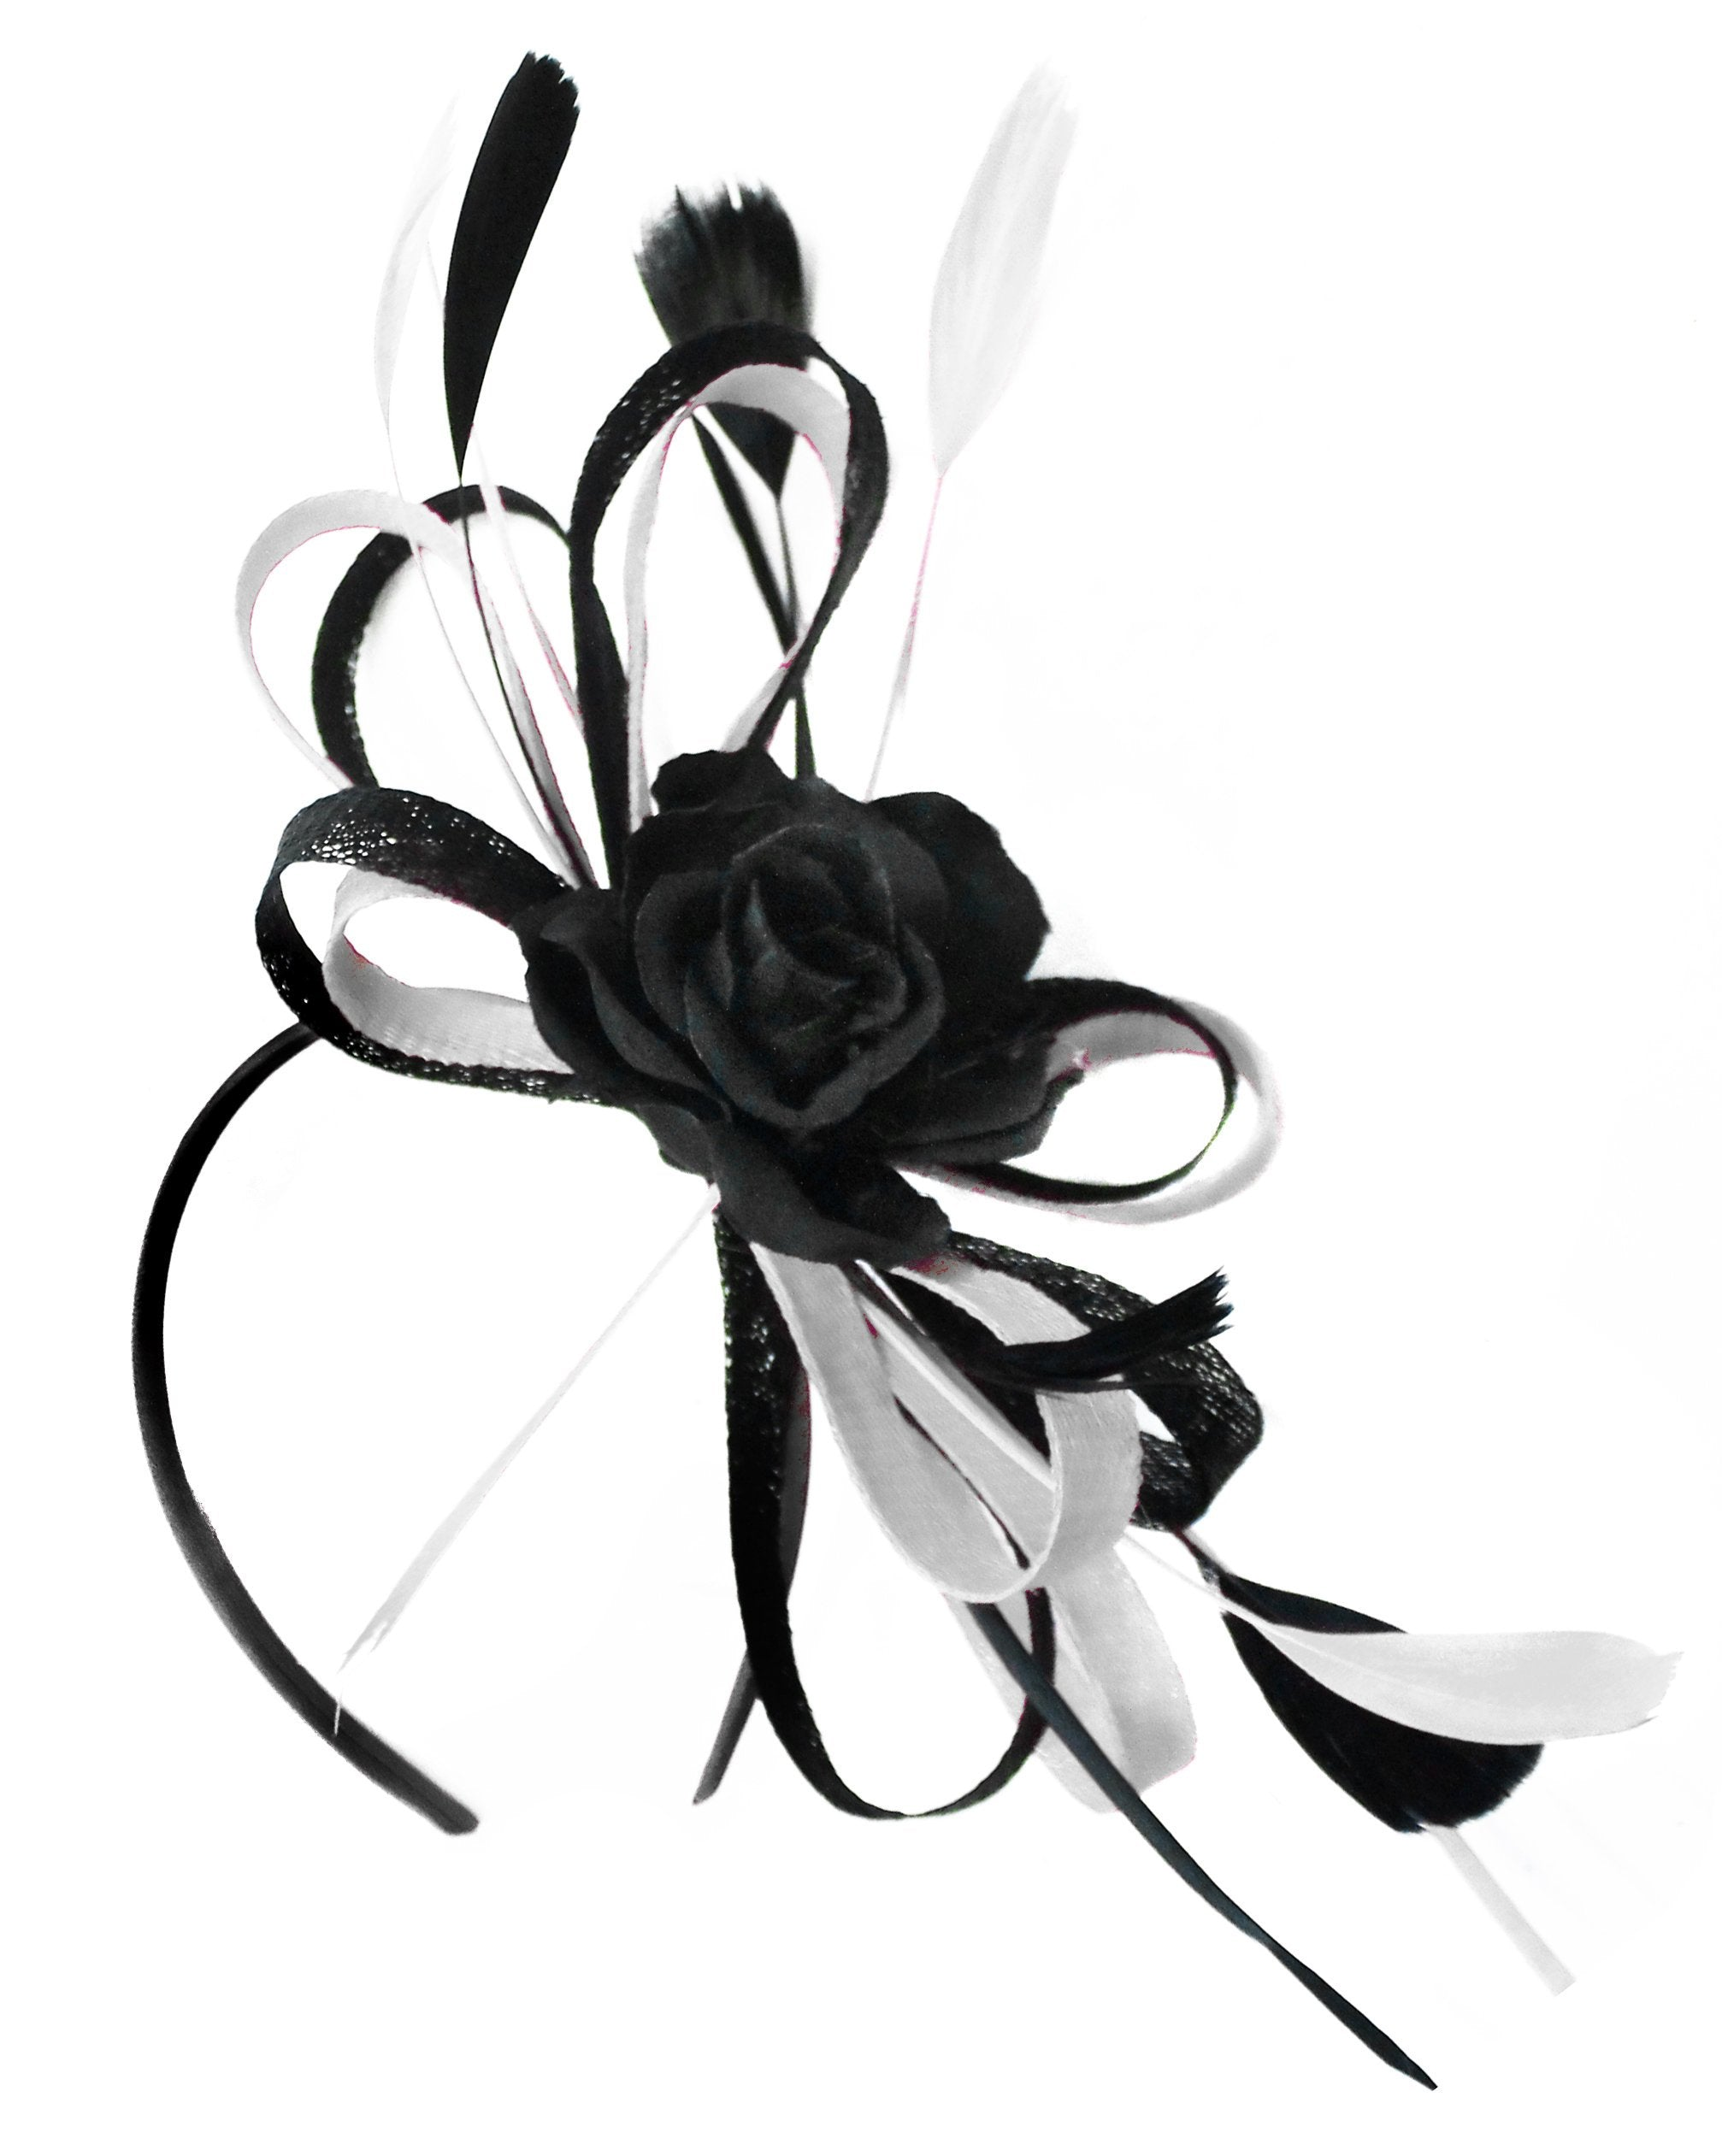 Caprilite Sinamay Rose Black and White Fascinator on Headband Alice Band UK Wedding Ascot Races Loop